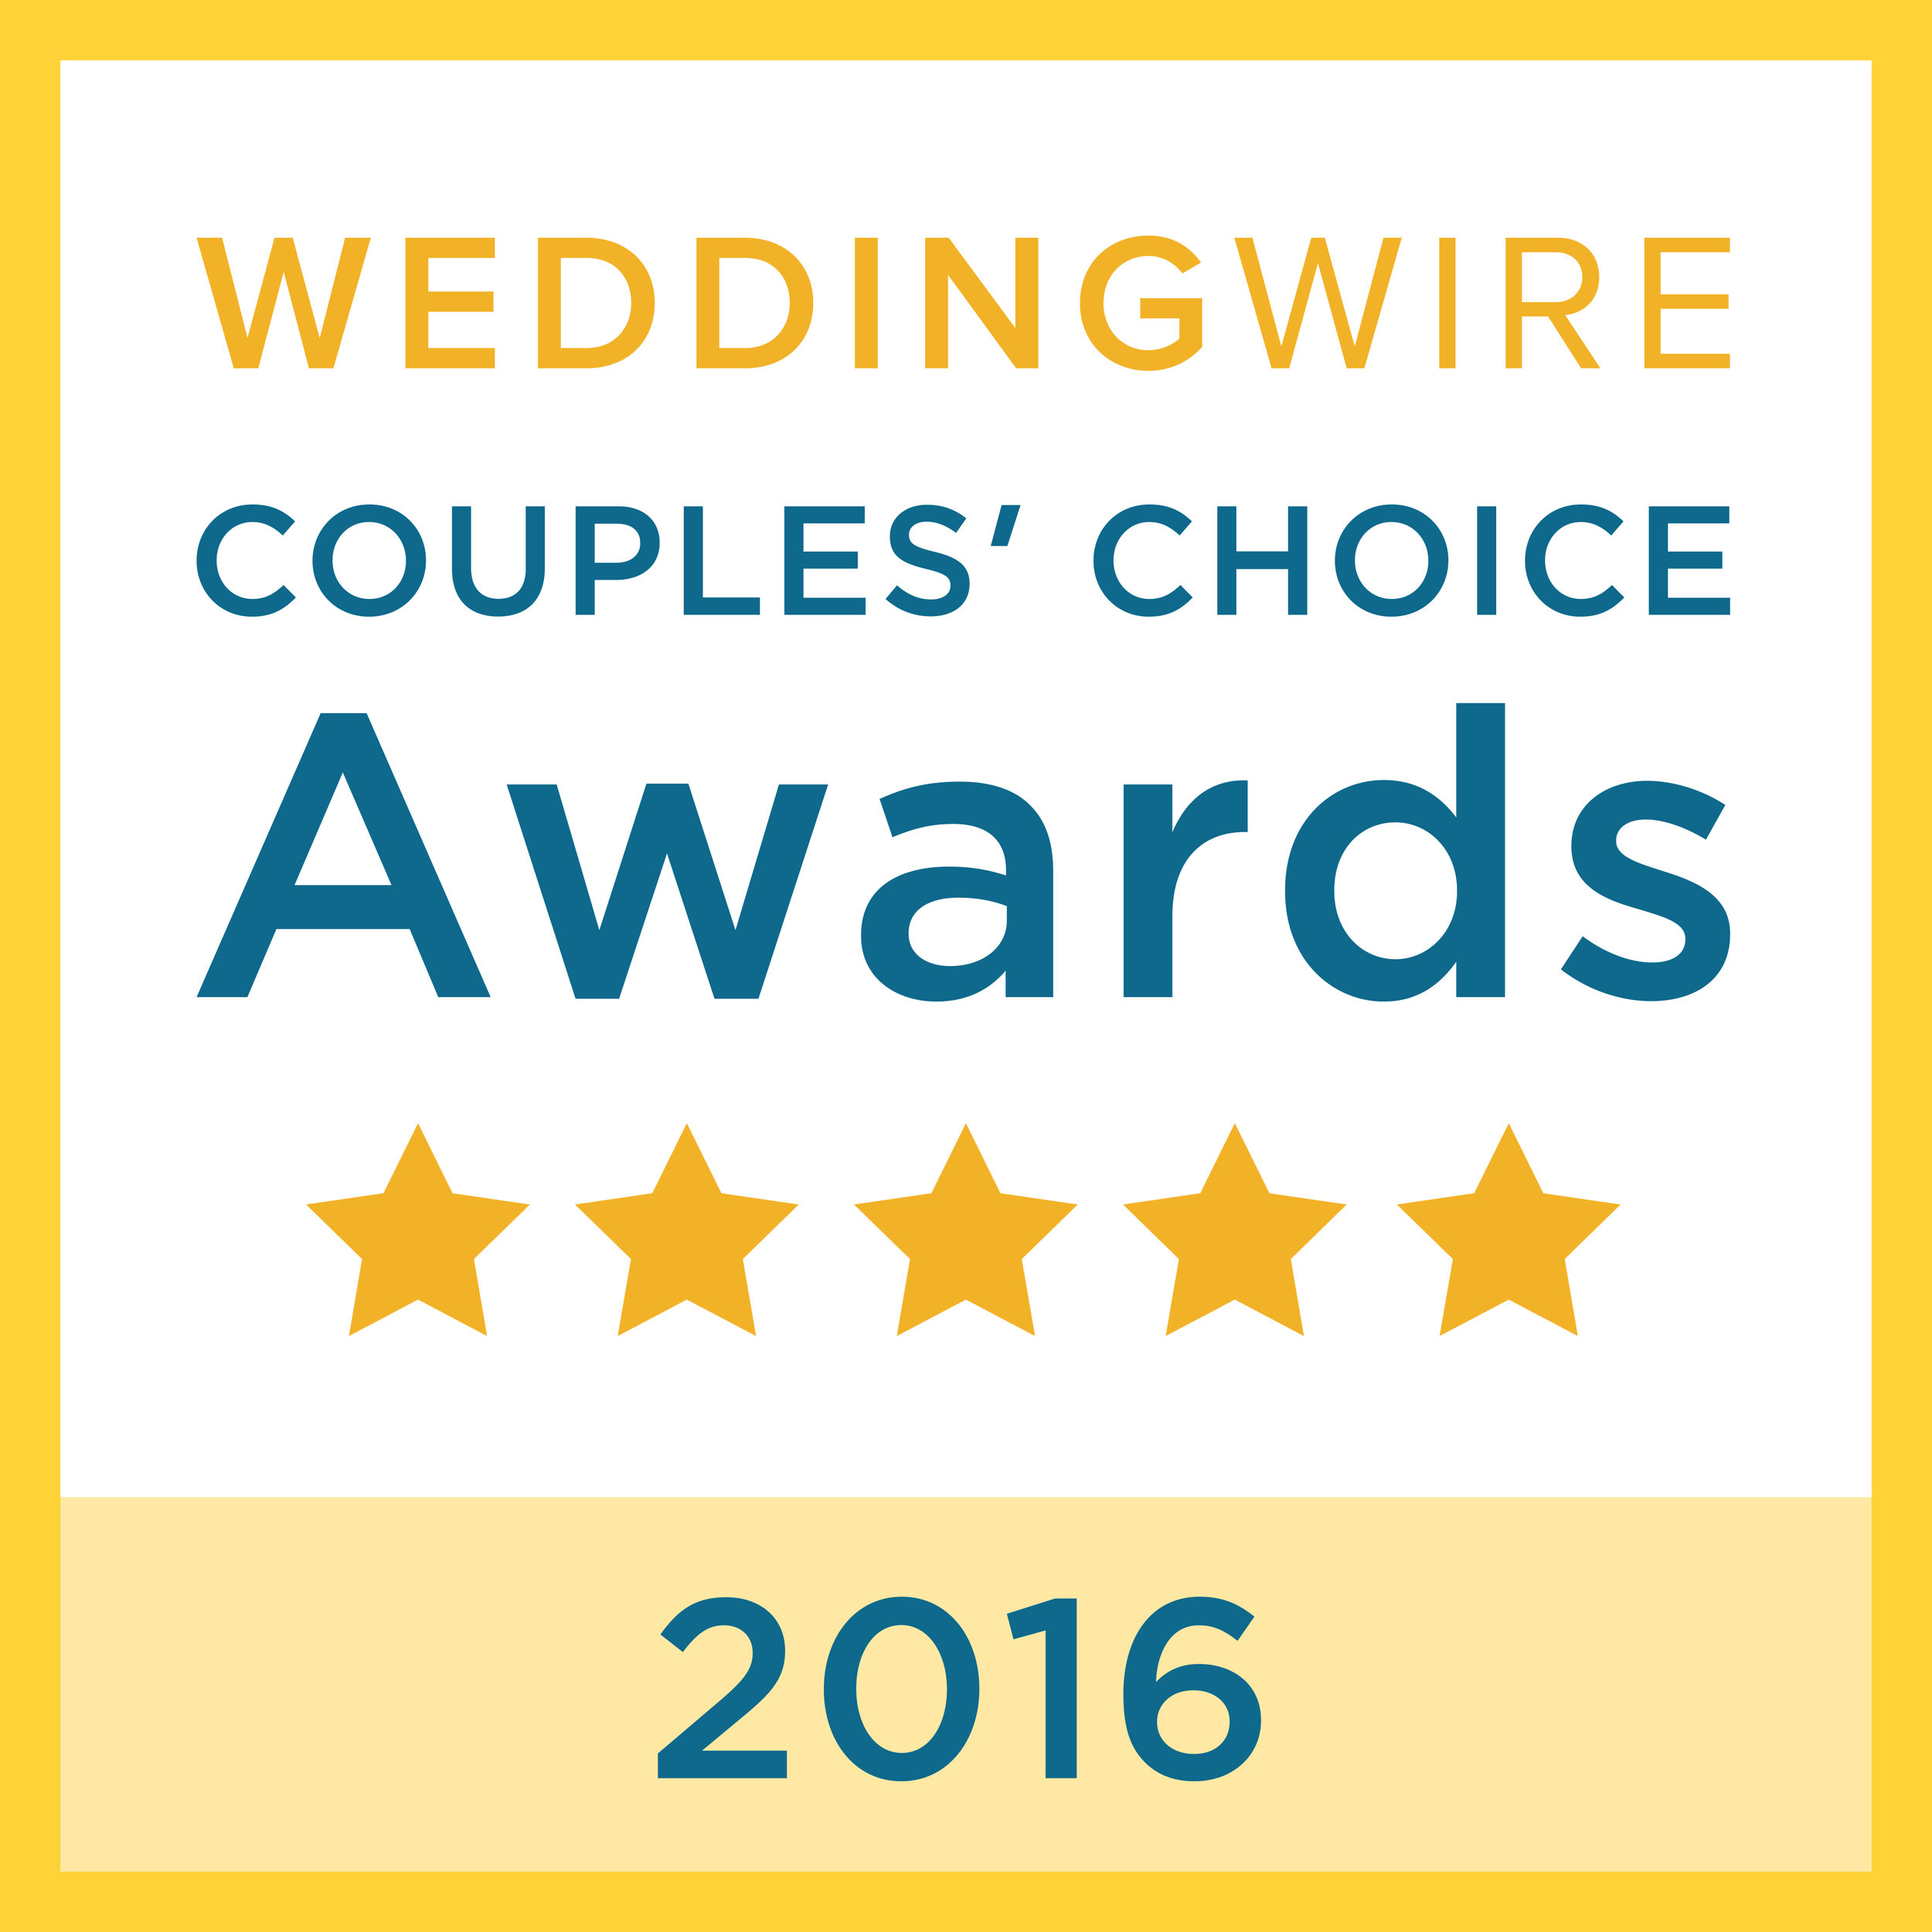 2016 Wedding Wire Couples Choice Awards.jpg